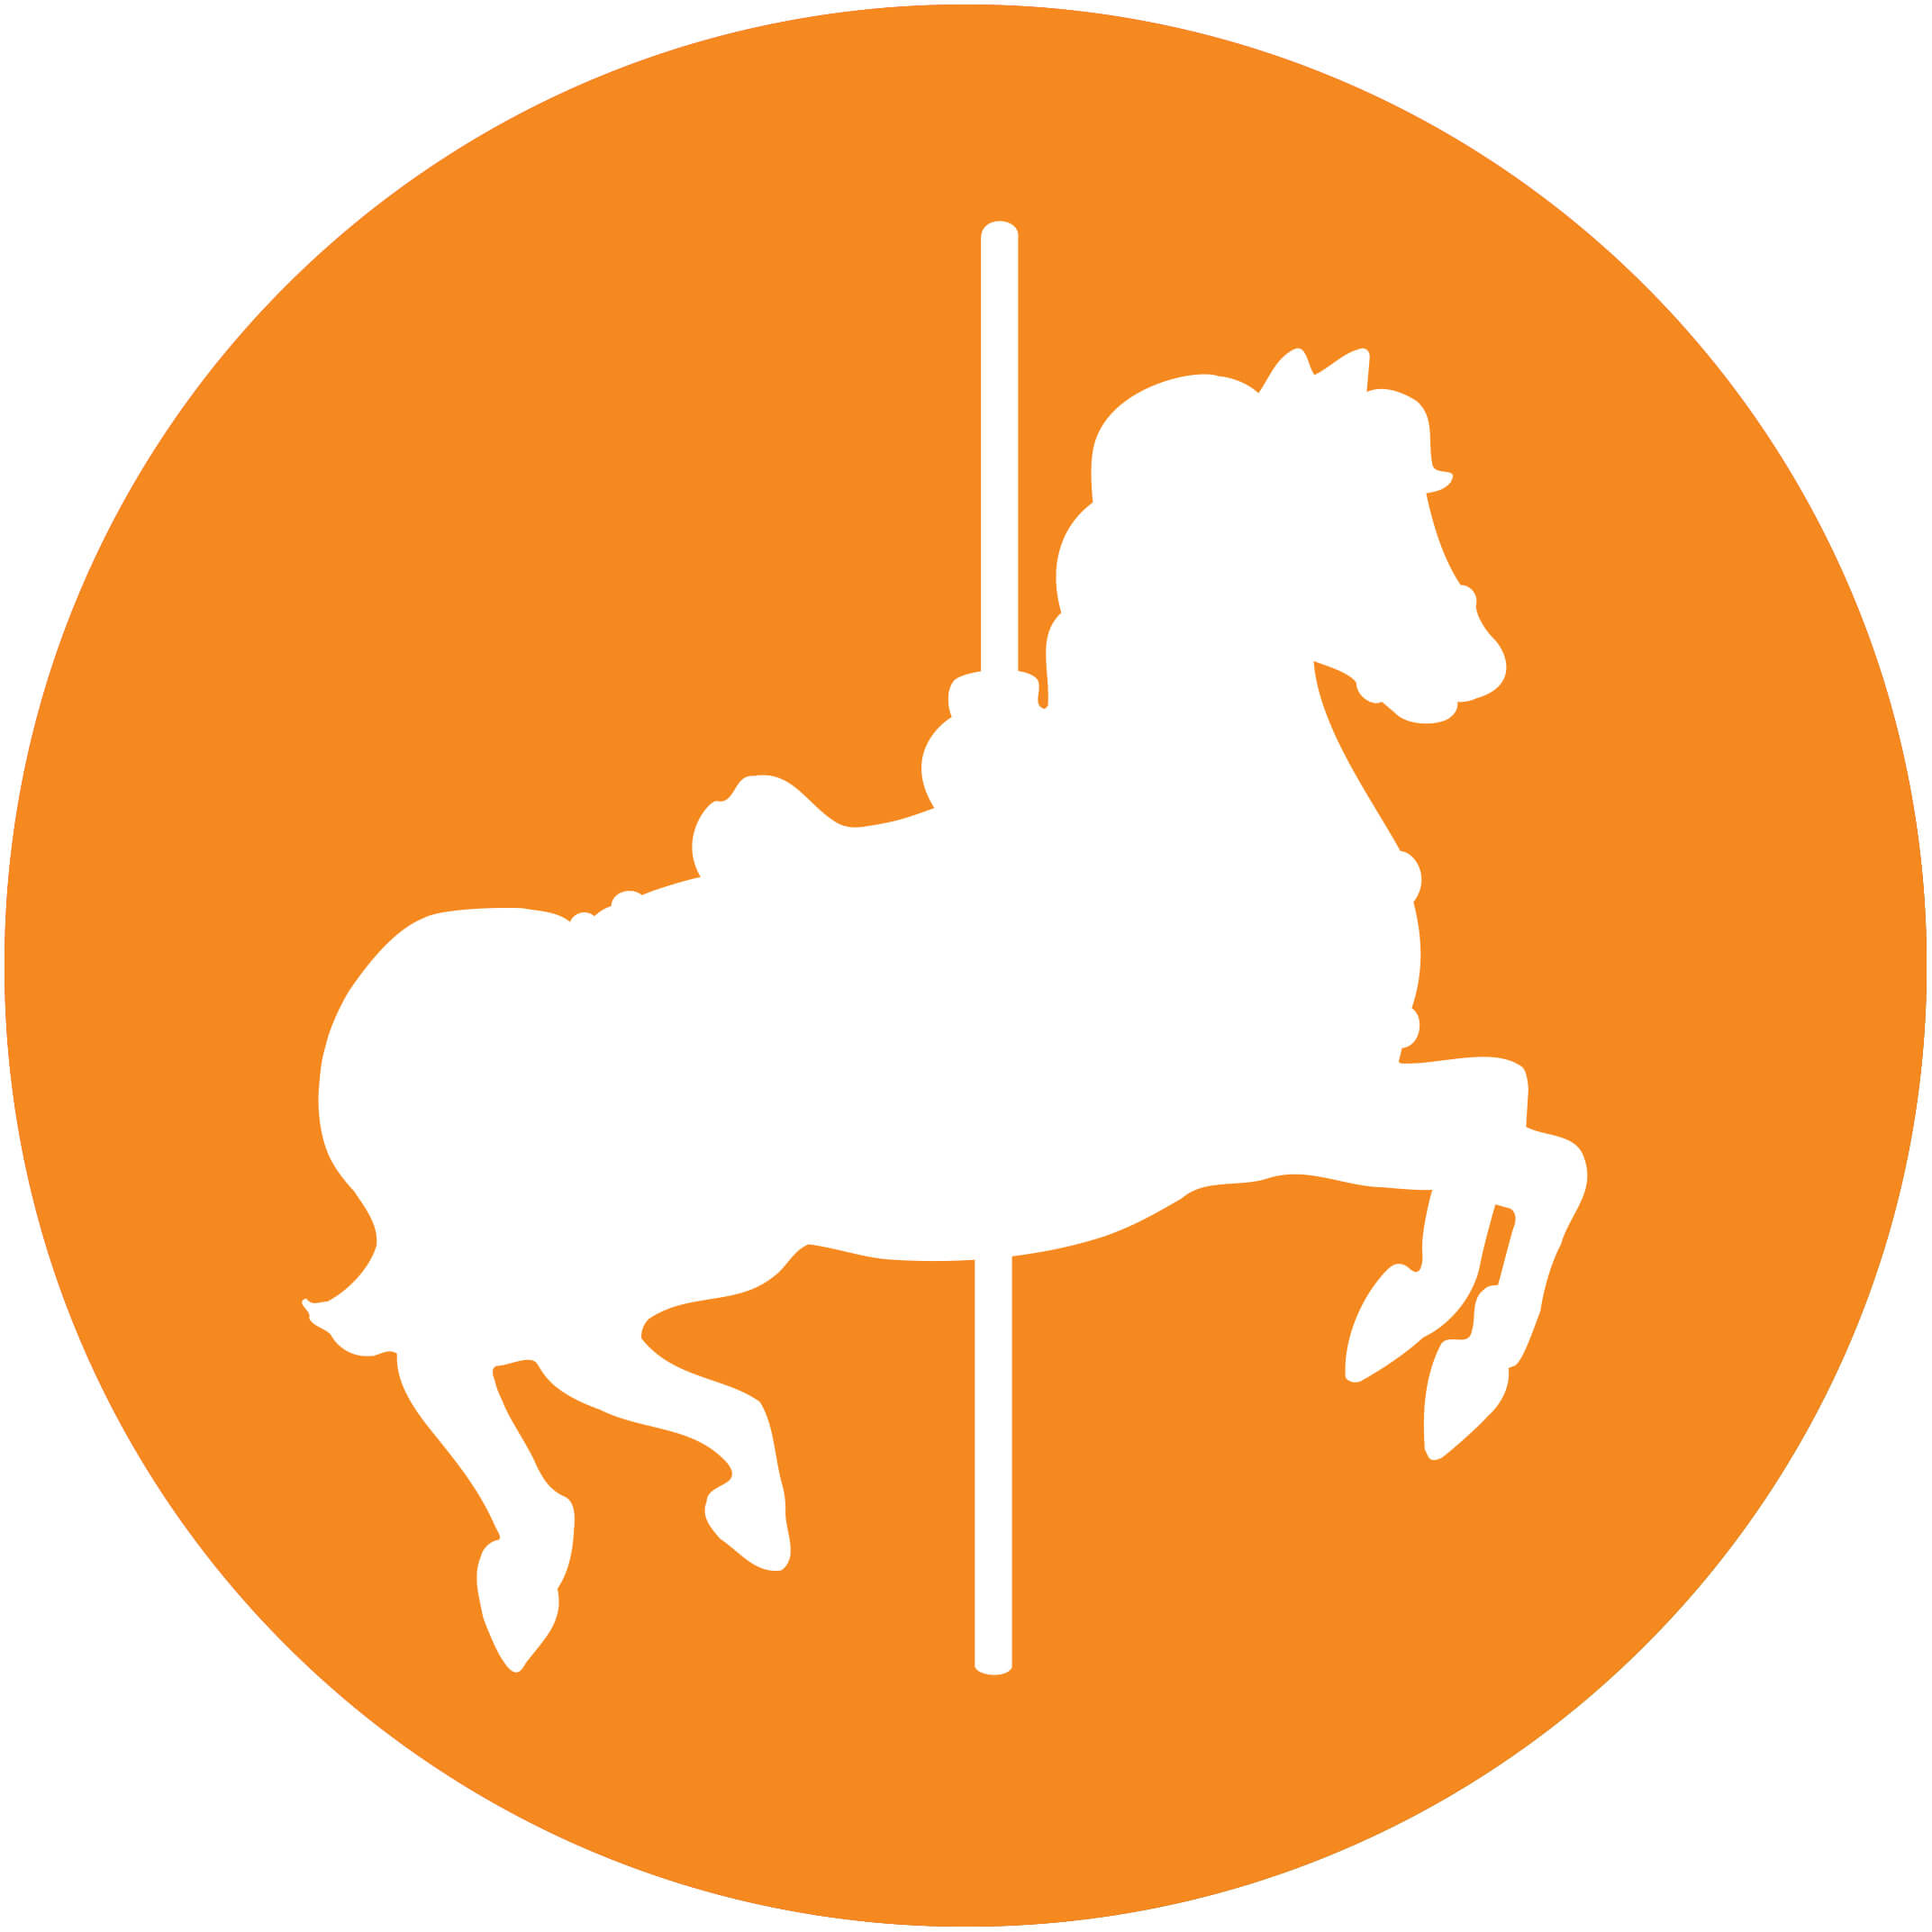 Graphic Icon of Carousel horse